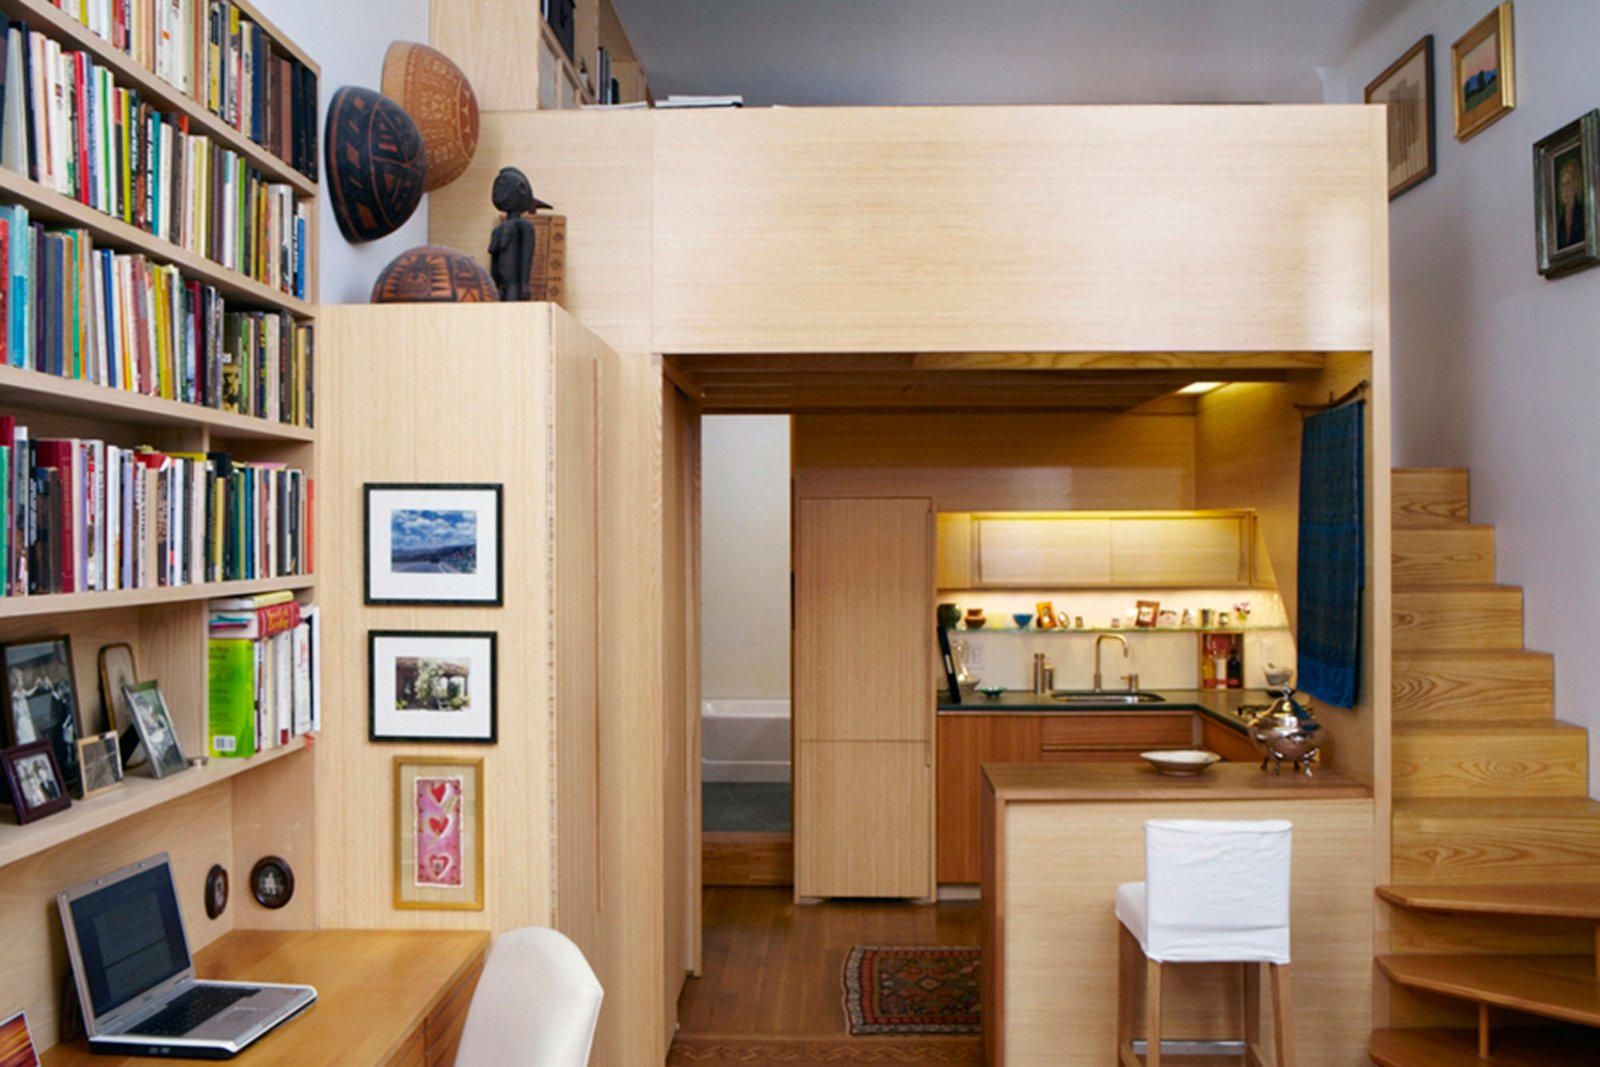 Faced with the challenge of a diminutive New York apartment in desperate need of a refresh, architect Tim Seggerman went straight to his toolbox to craft a Nakashima-inspired interior. Photo by David Engelhardt.  Photo 4 of 8 in Space-Saving Wood-Paneled Apartment in Manhattan